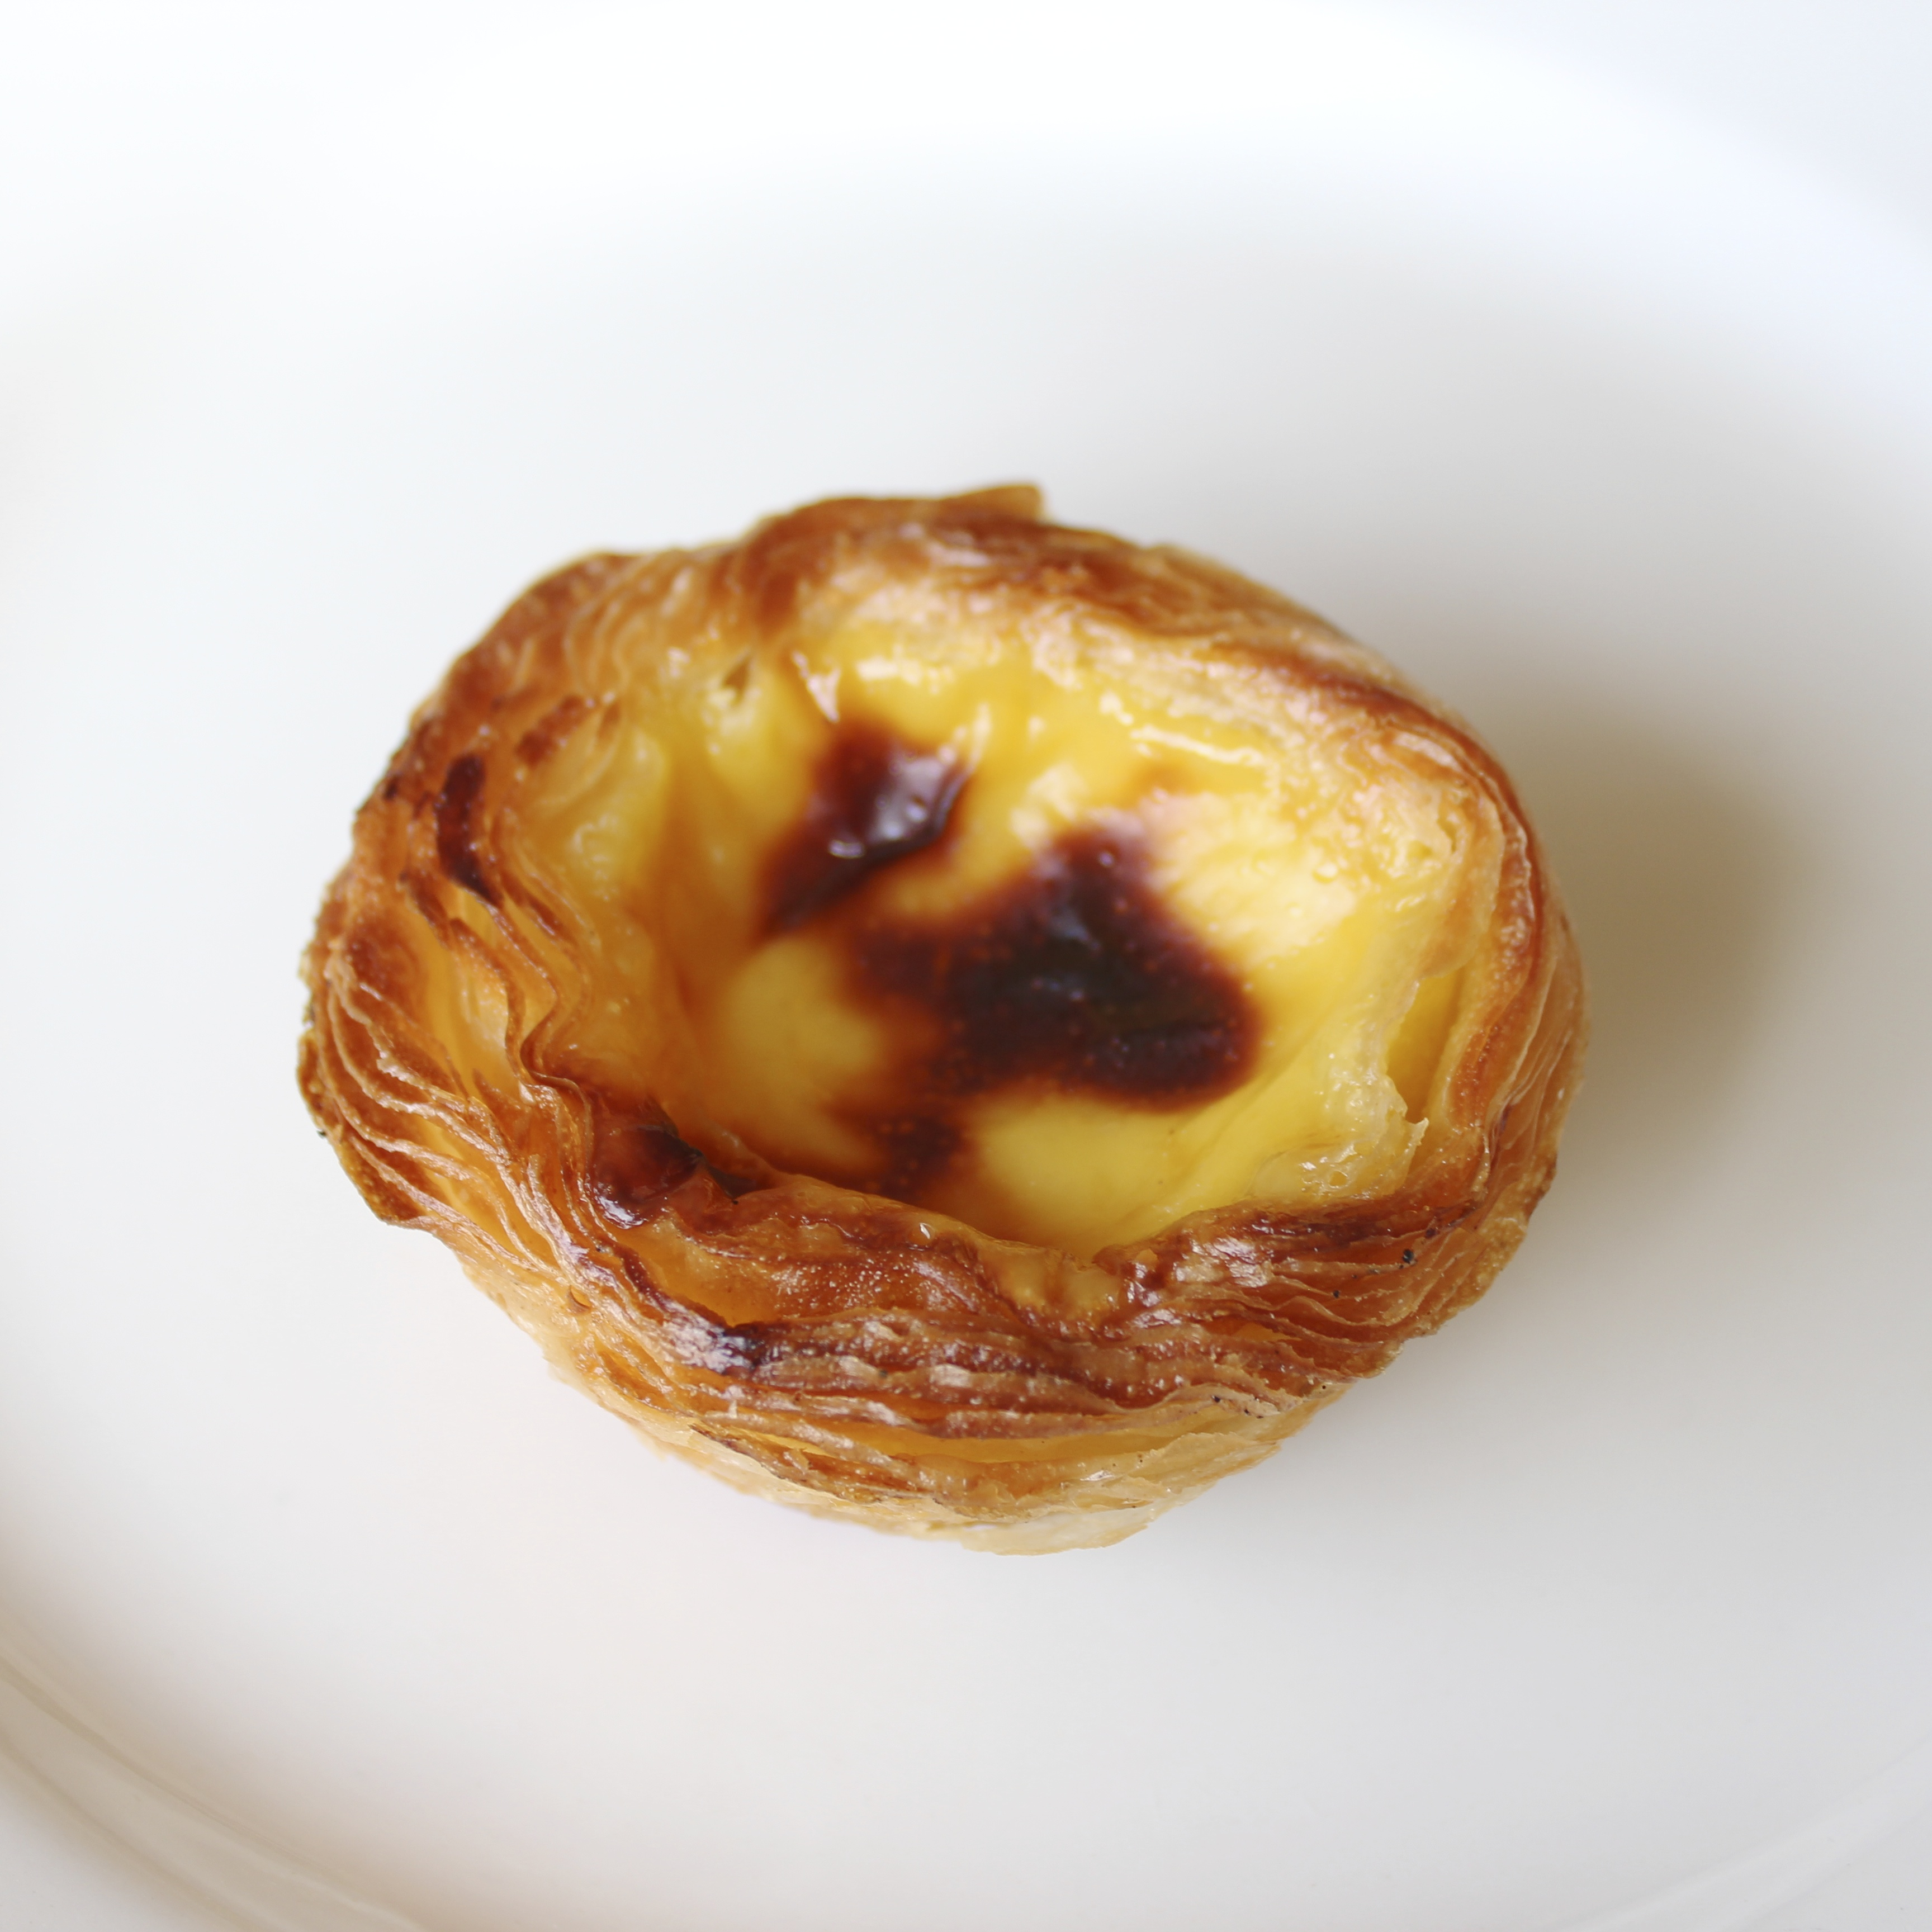 dined dished natas pastries portuguese pasteis de nata. Black Bedroom Furniture Sets. Home Design Ideas